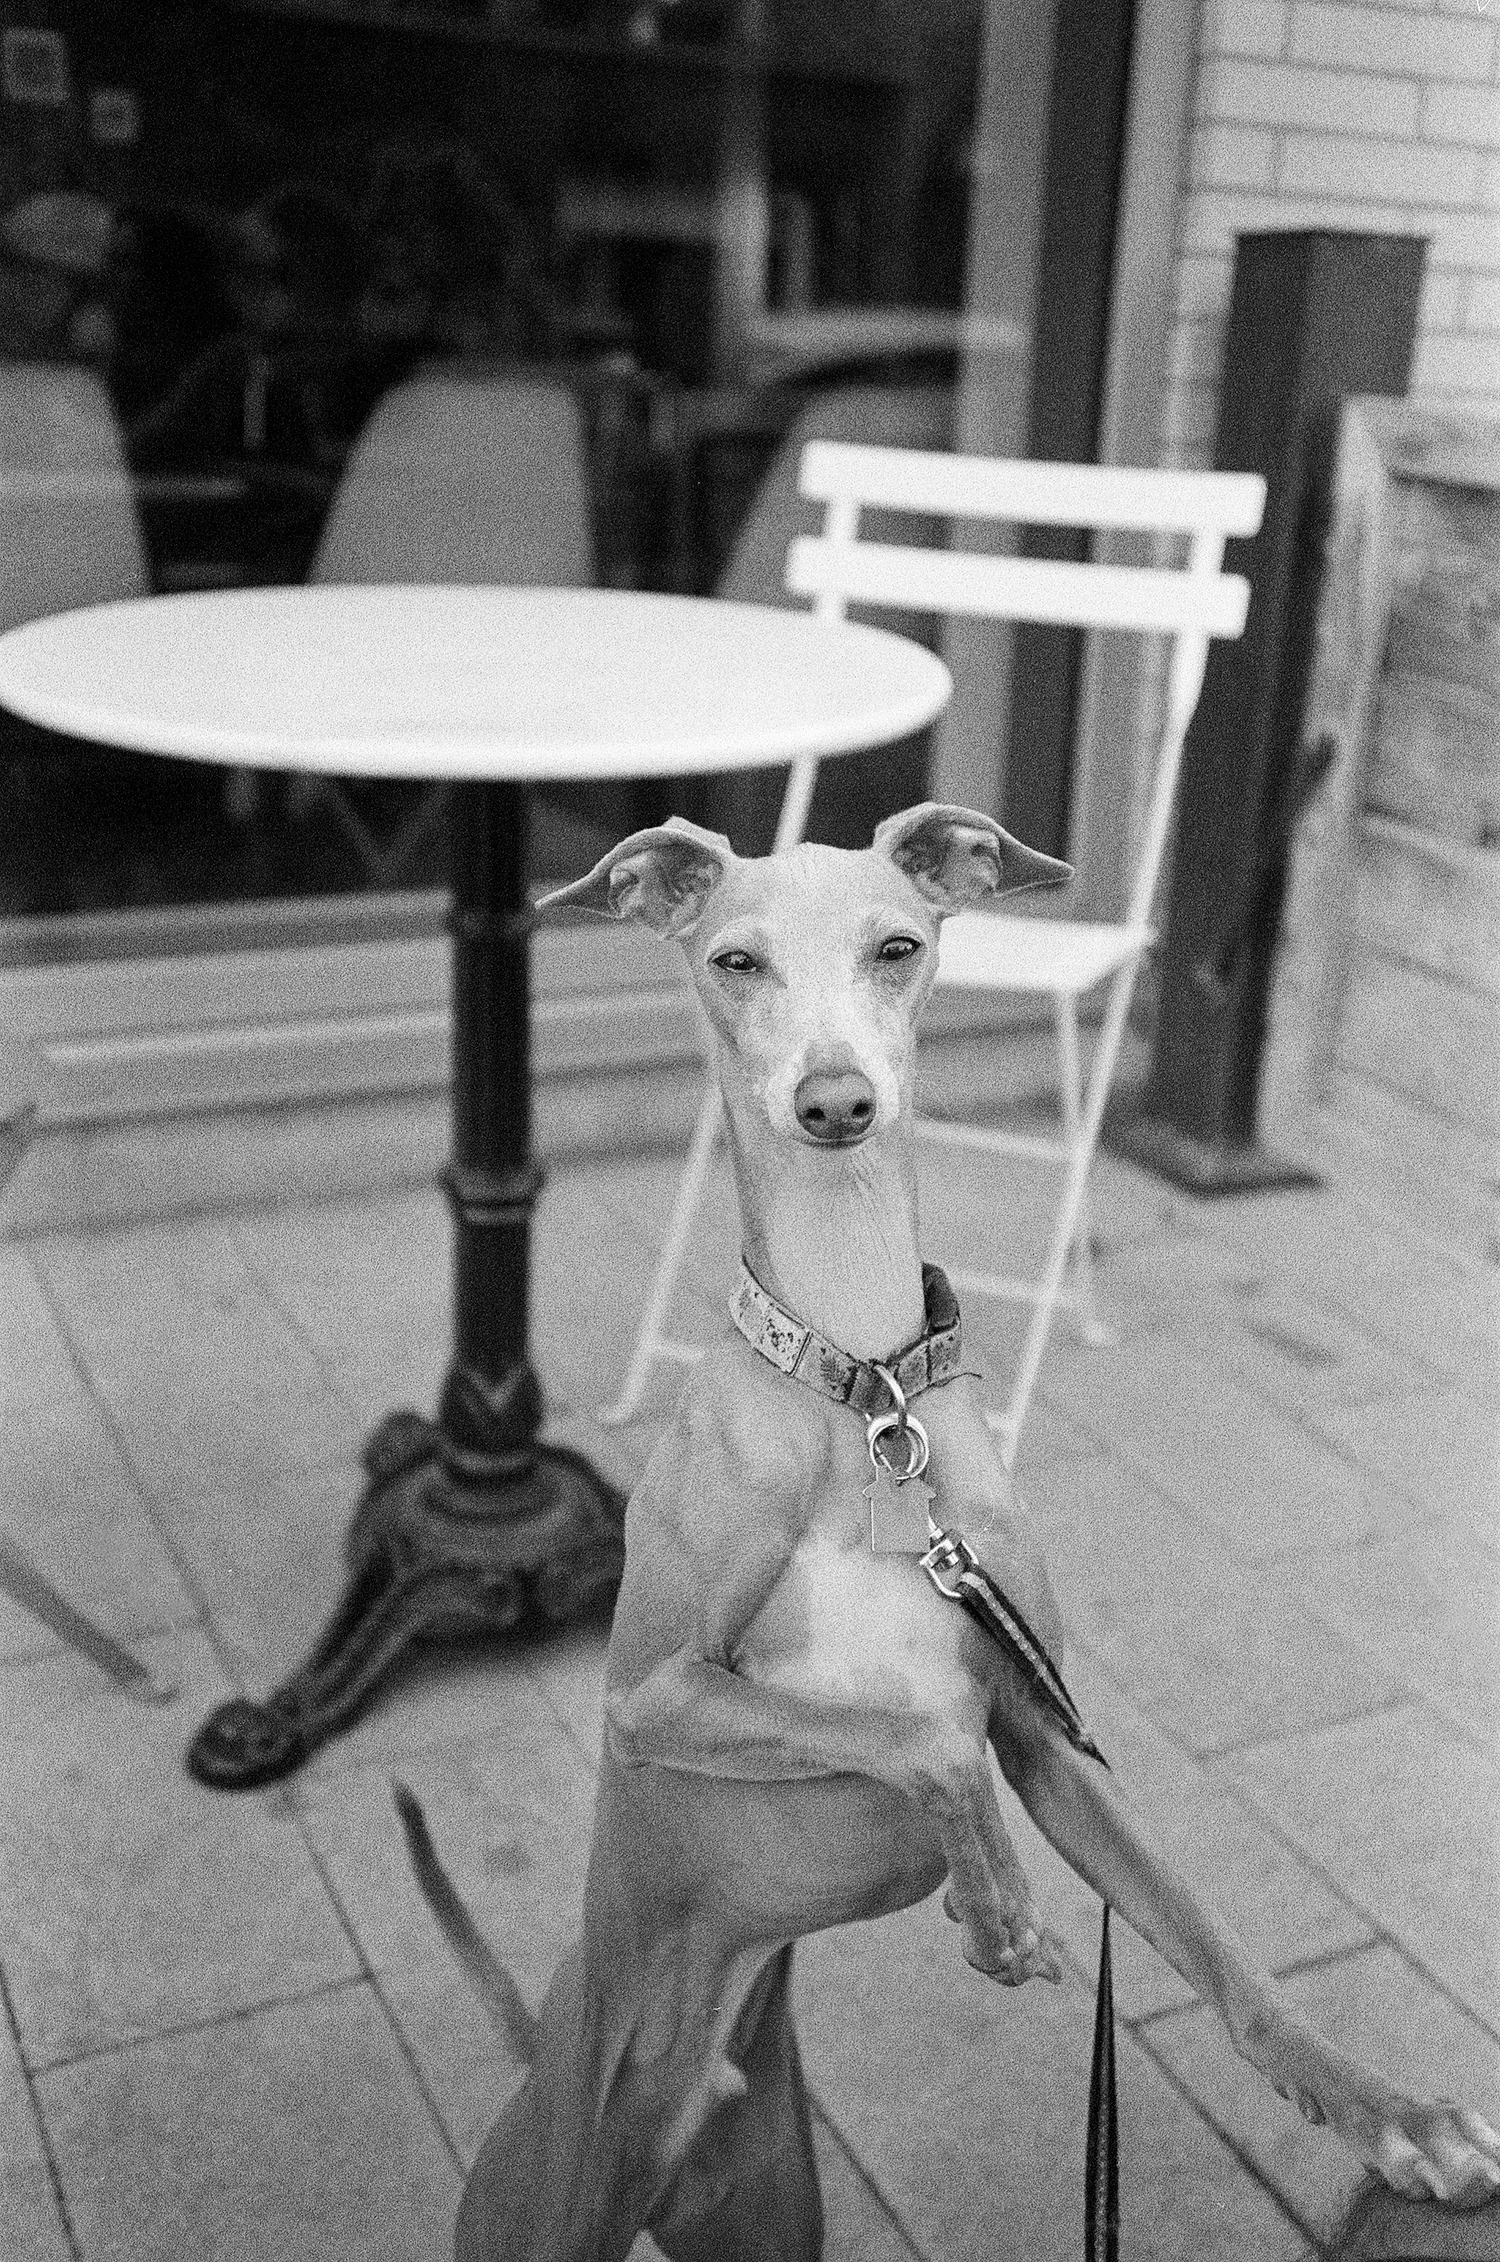 31-Cute-Italian-Greyhound-named-Dobby.jpg